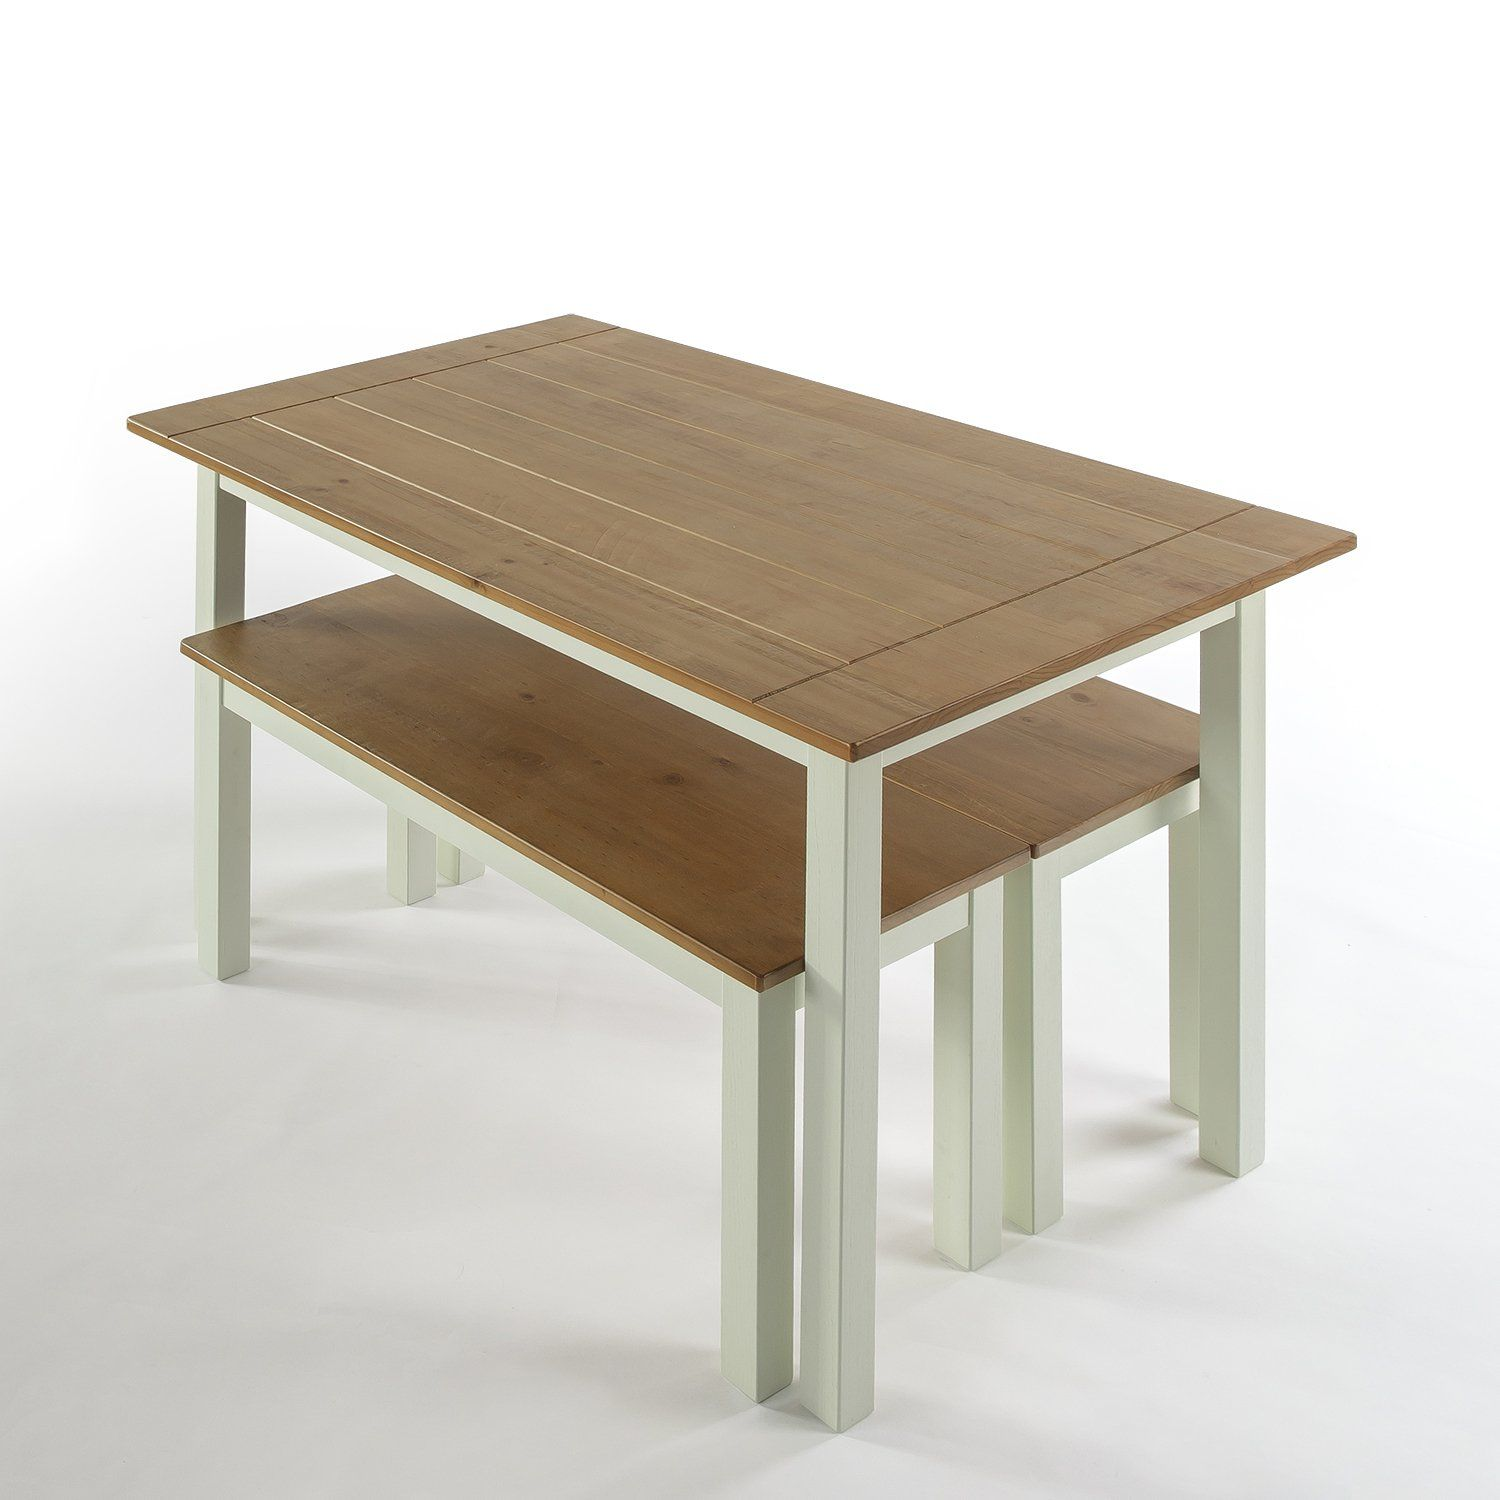 Zinus farmhouse dining table with two benches 3 piece